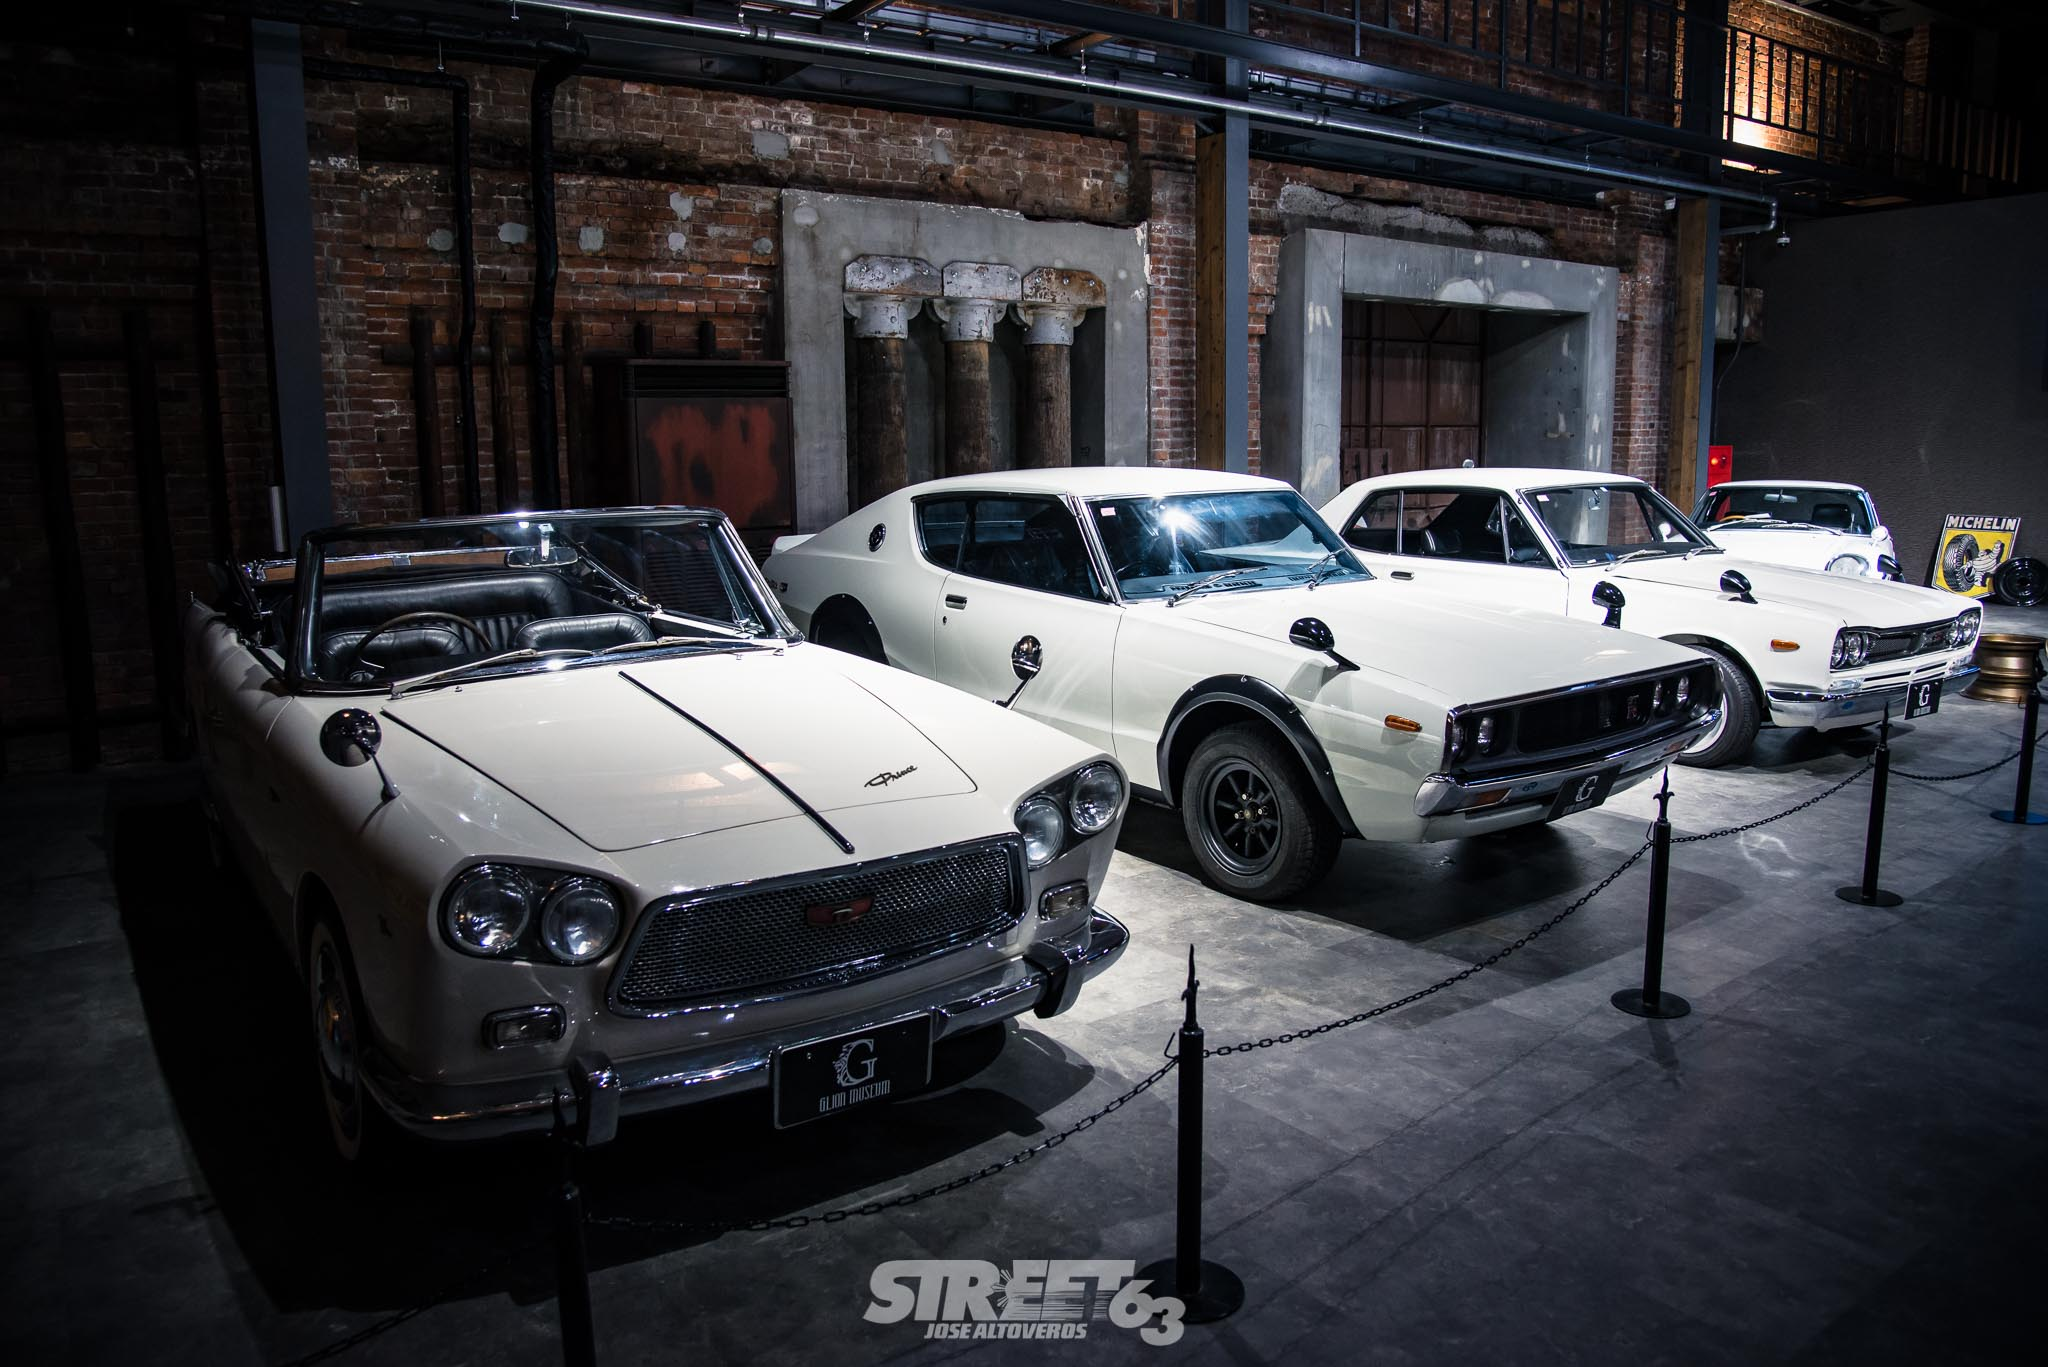 **Automotive History and Obscura on Display:** Osaka's Glion Museum